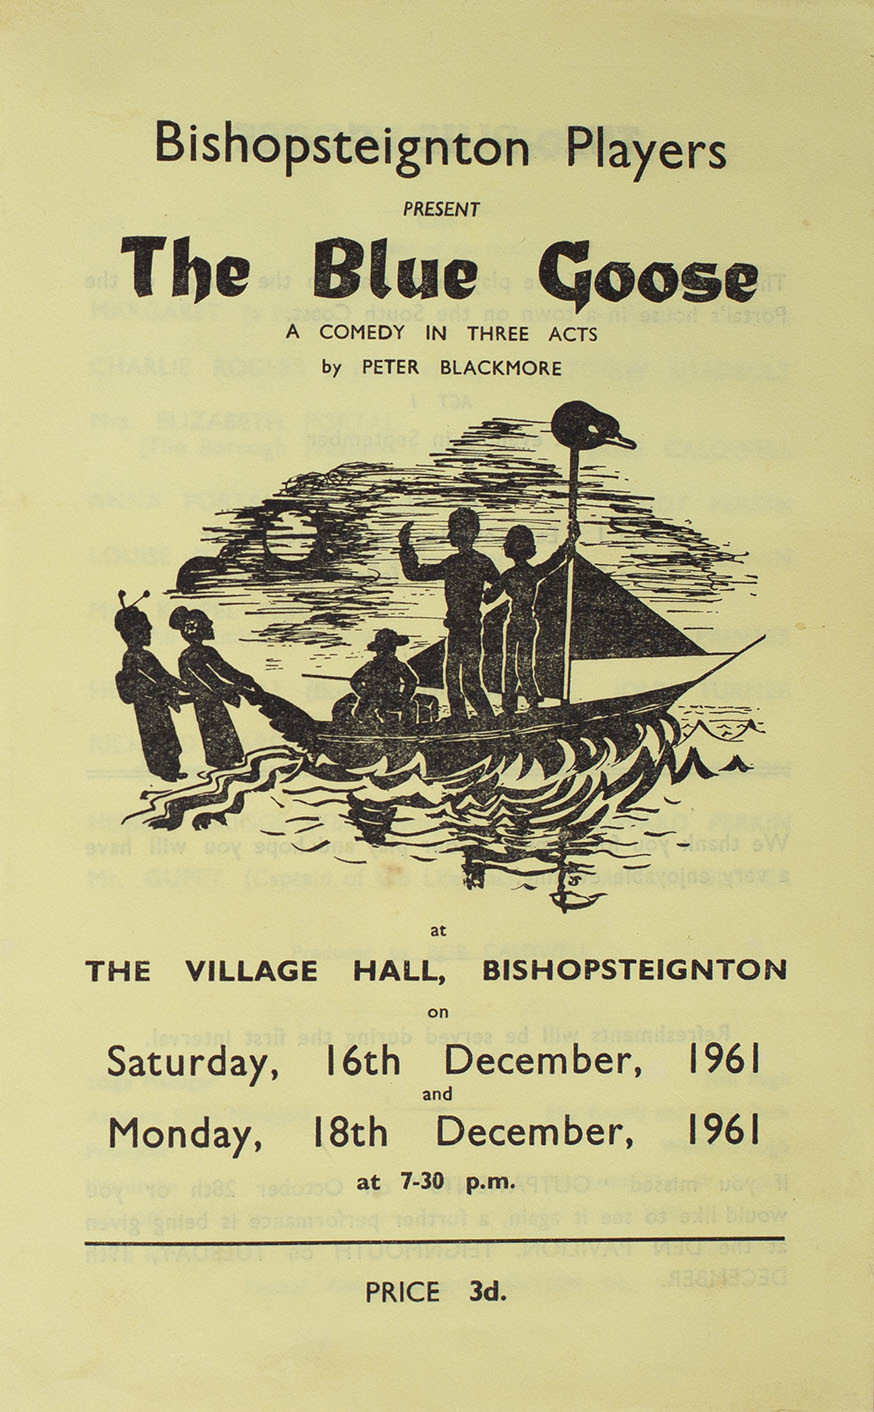 Leaflet to advertise the programme of the play 'The Blue Goose' presented by Bishopsteignton Players front